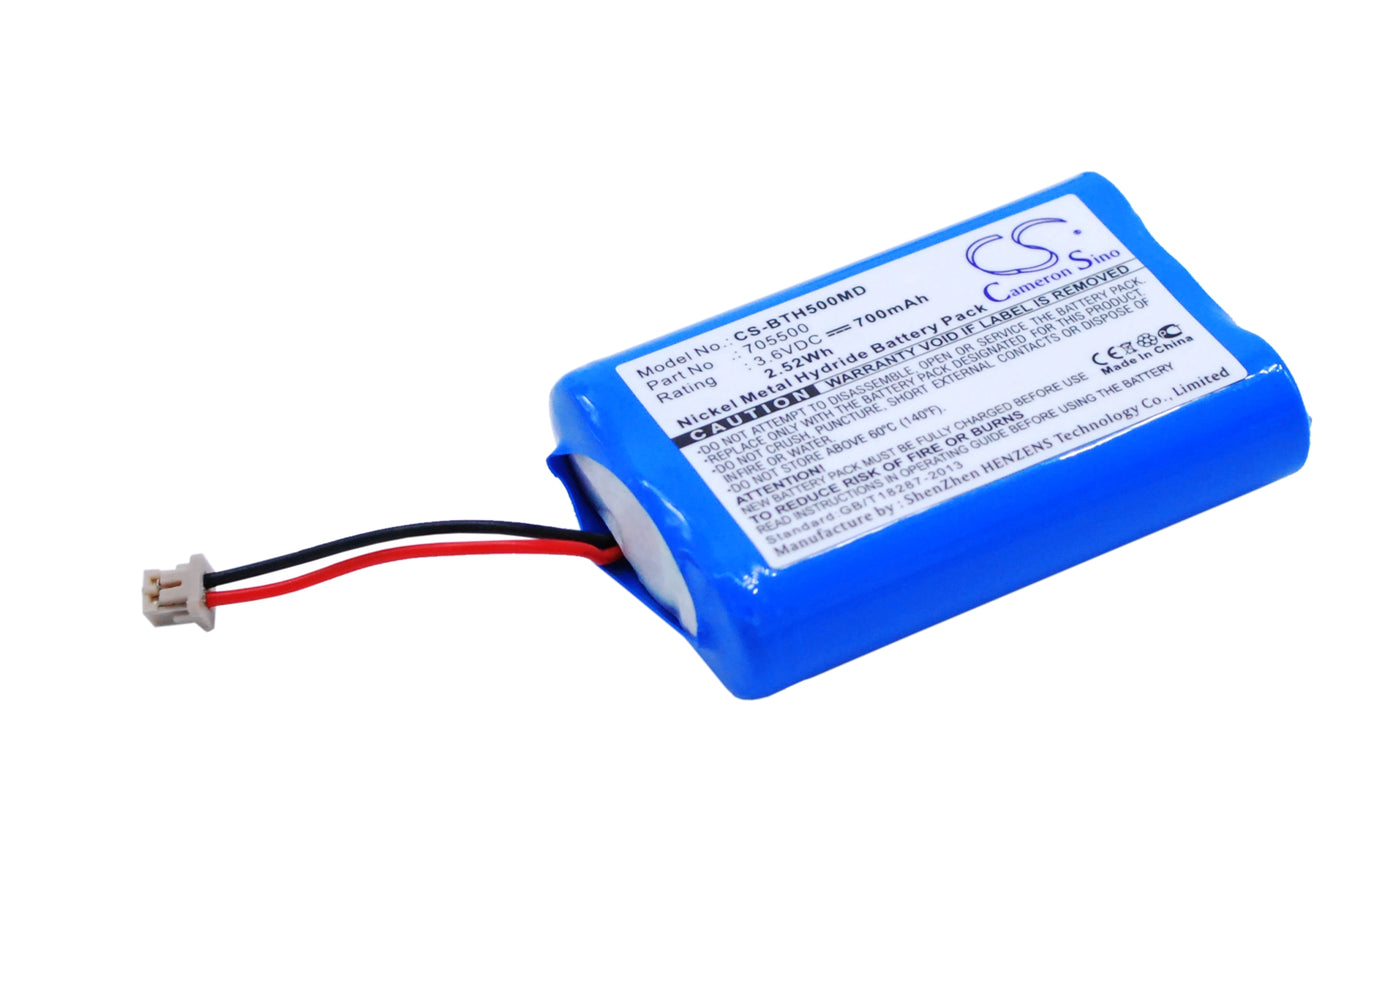 CS-BTH500MD Cameron Sino Battery